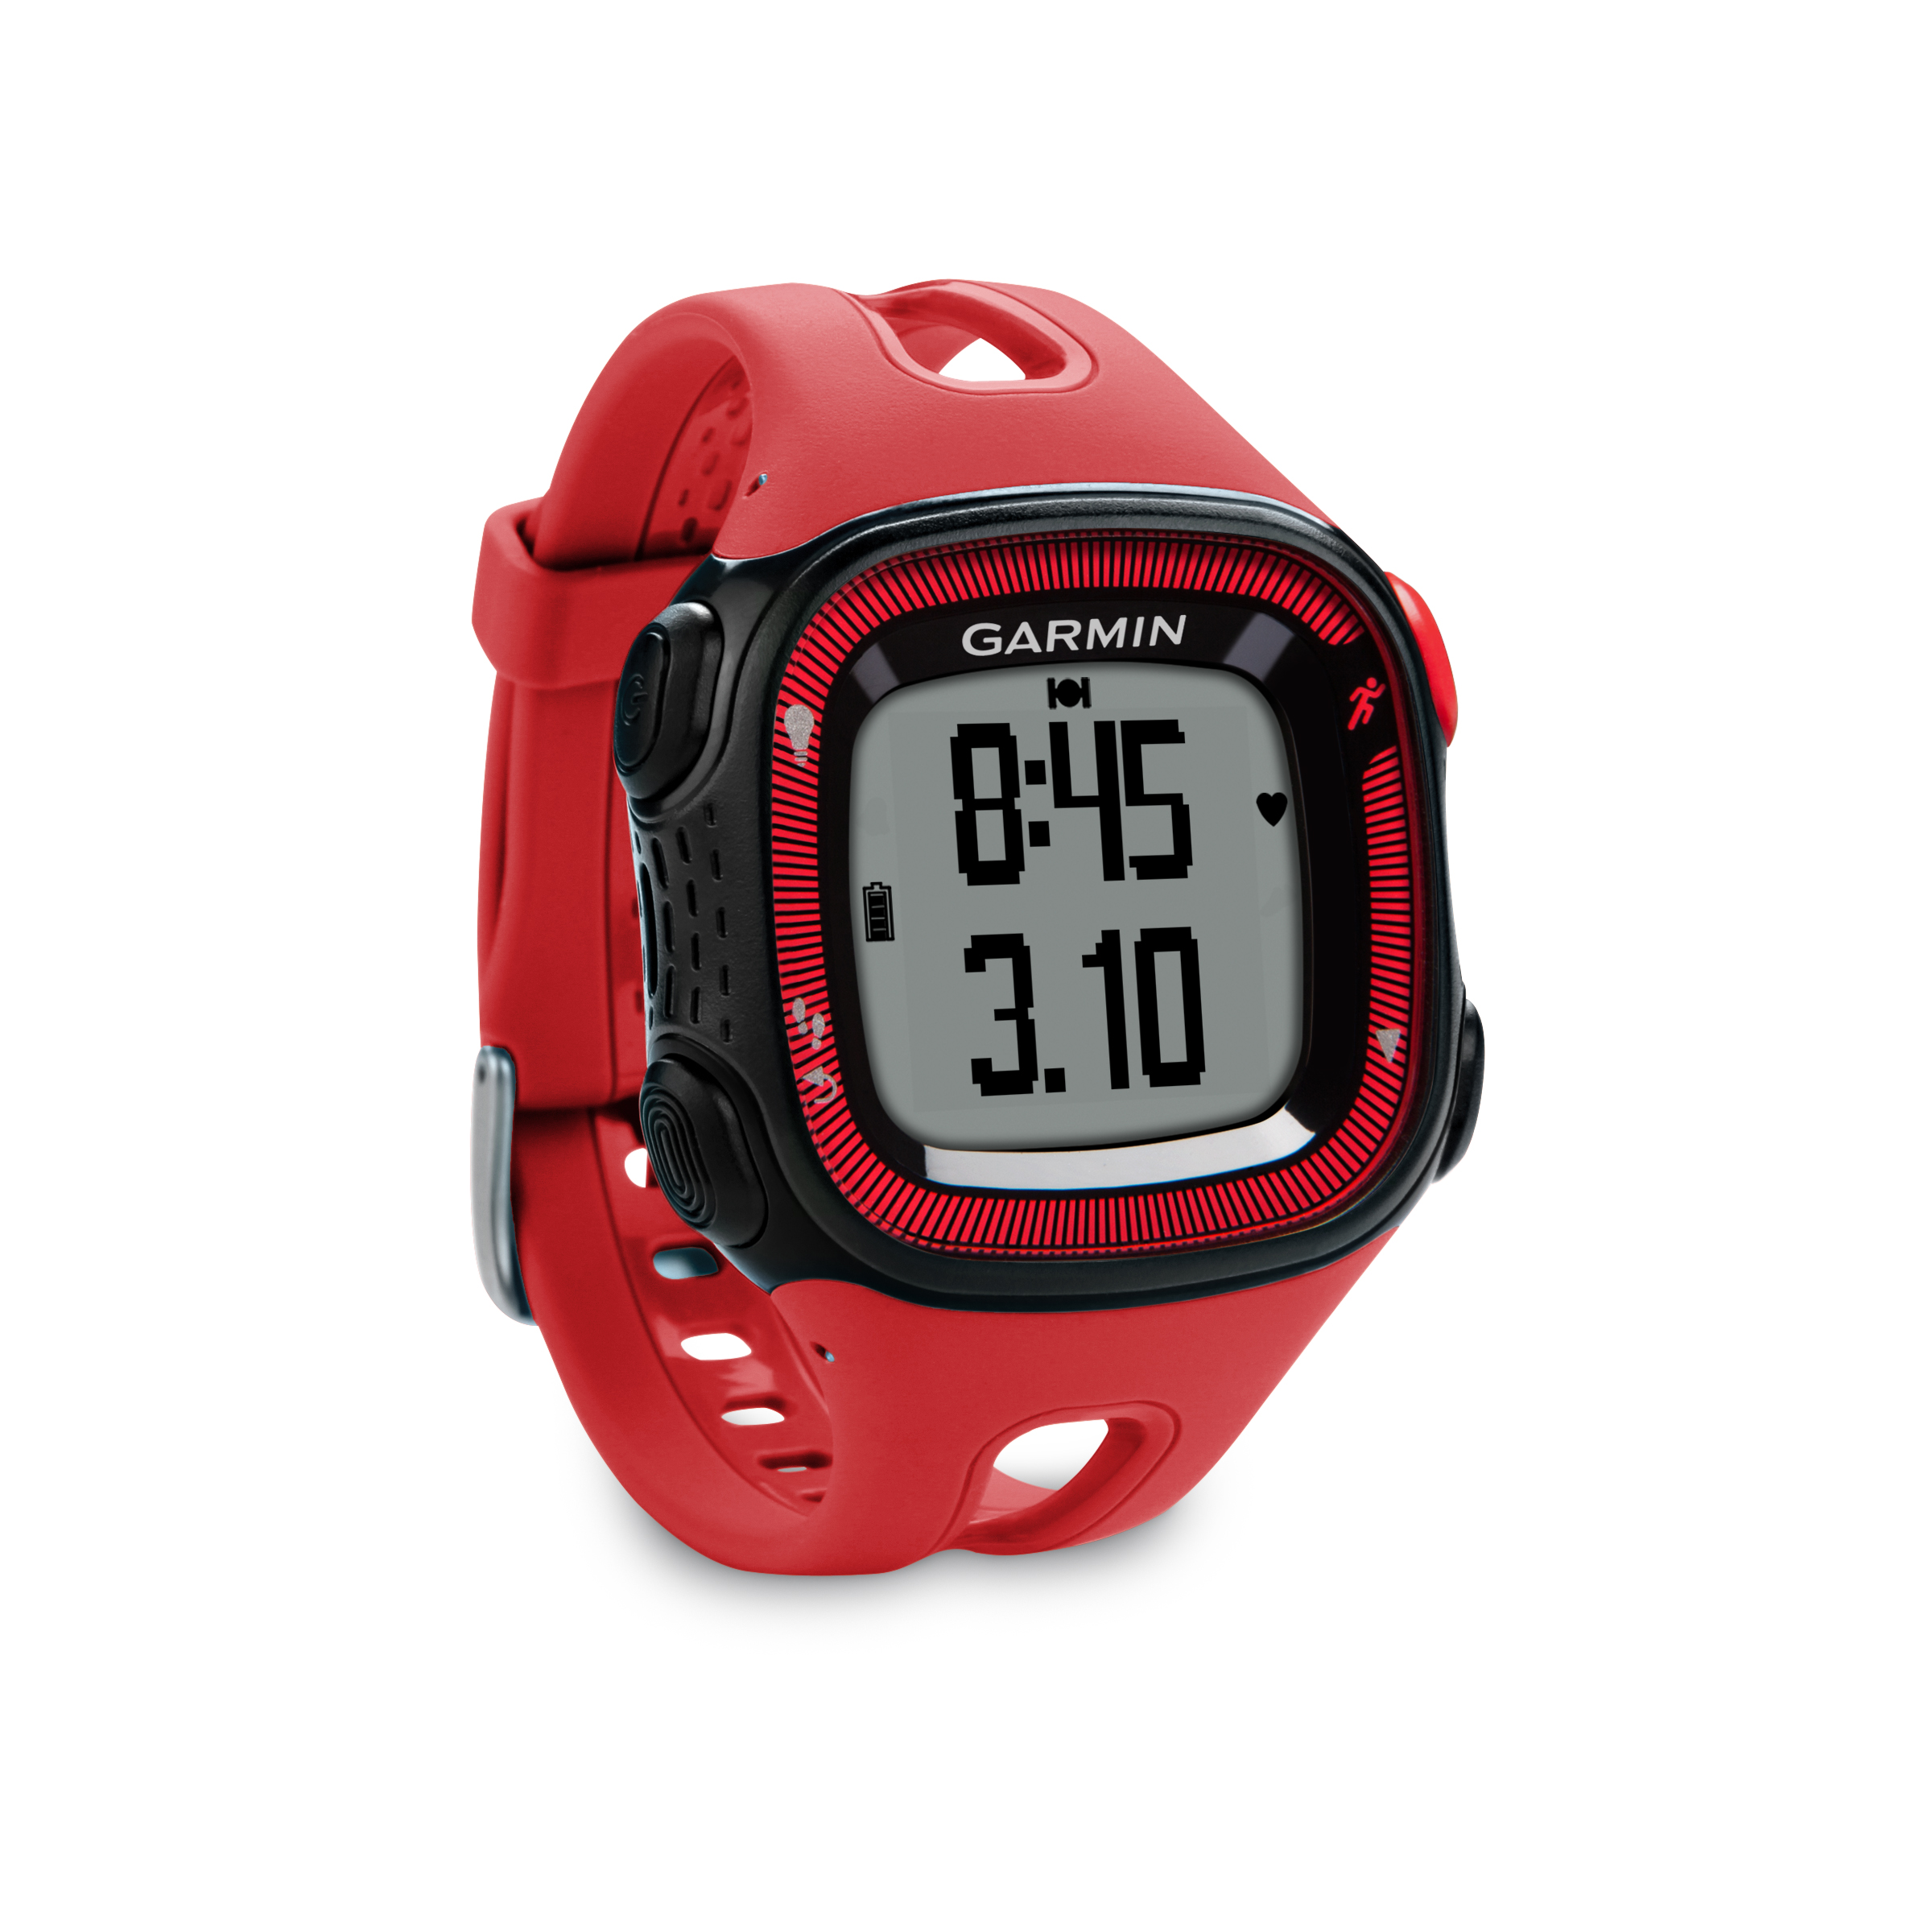 garmin montre gps forerunner 15 noir rouge. Black Bedroom Furniture Sets. Home Design Ideas